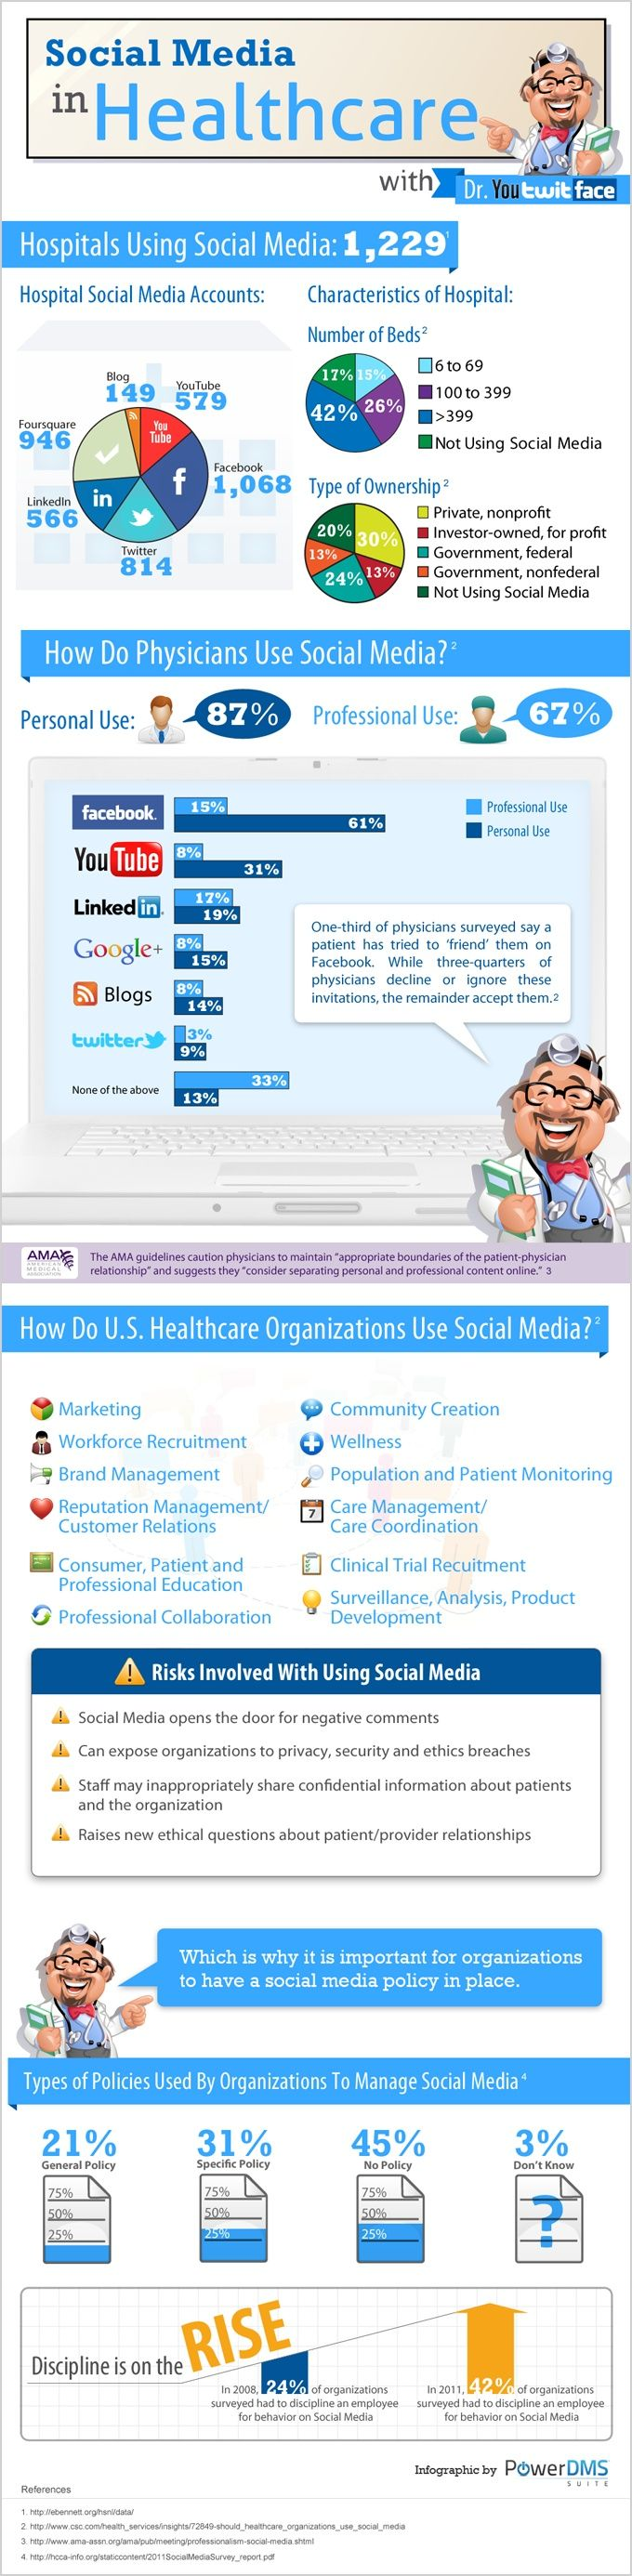 Social Media in Healthcare [Infographic] #healthcare #socialmedia #Infographic